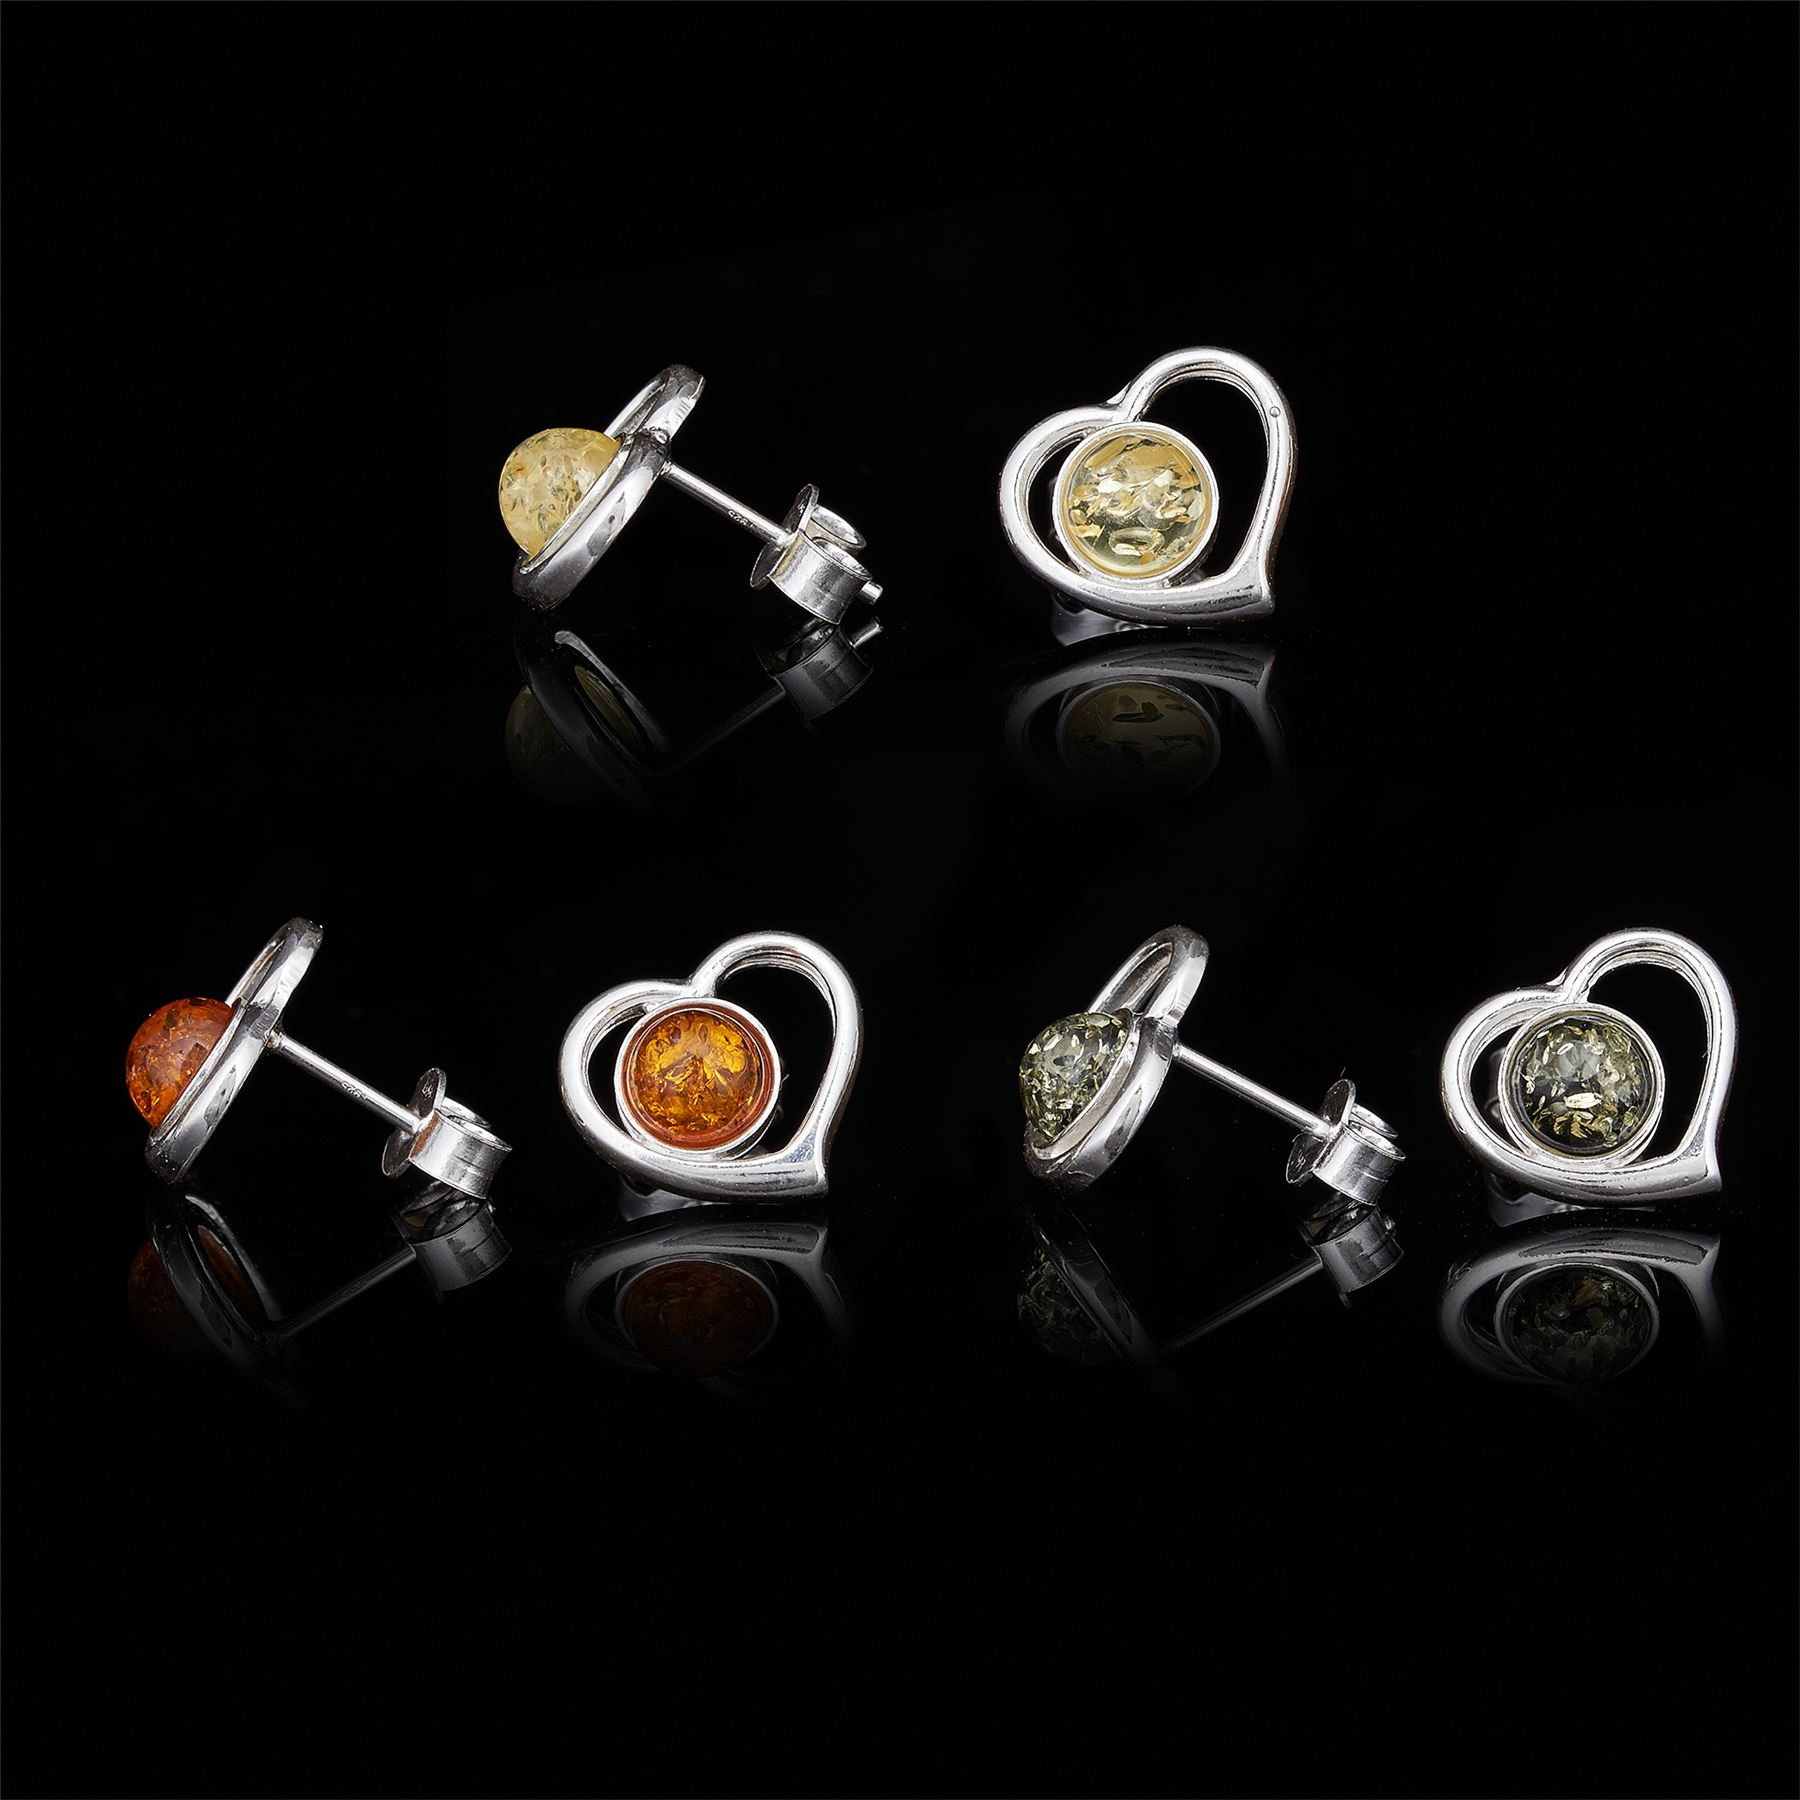 Amberta-Genuine-925-Sterling-Silver-Earrings-with-Natural-Baltic-Amber-Gemstone thumbnail 84